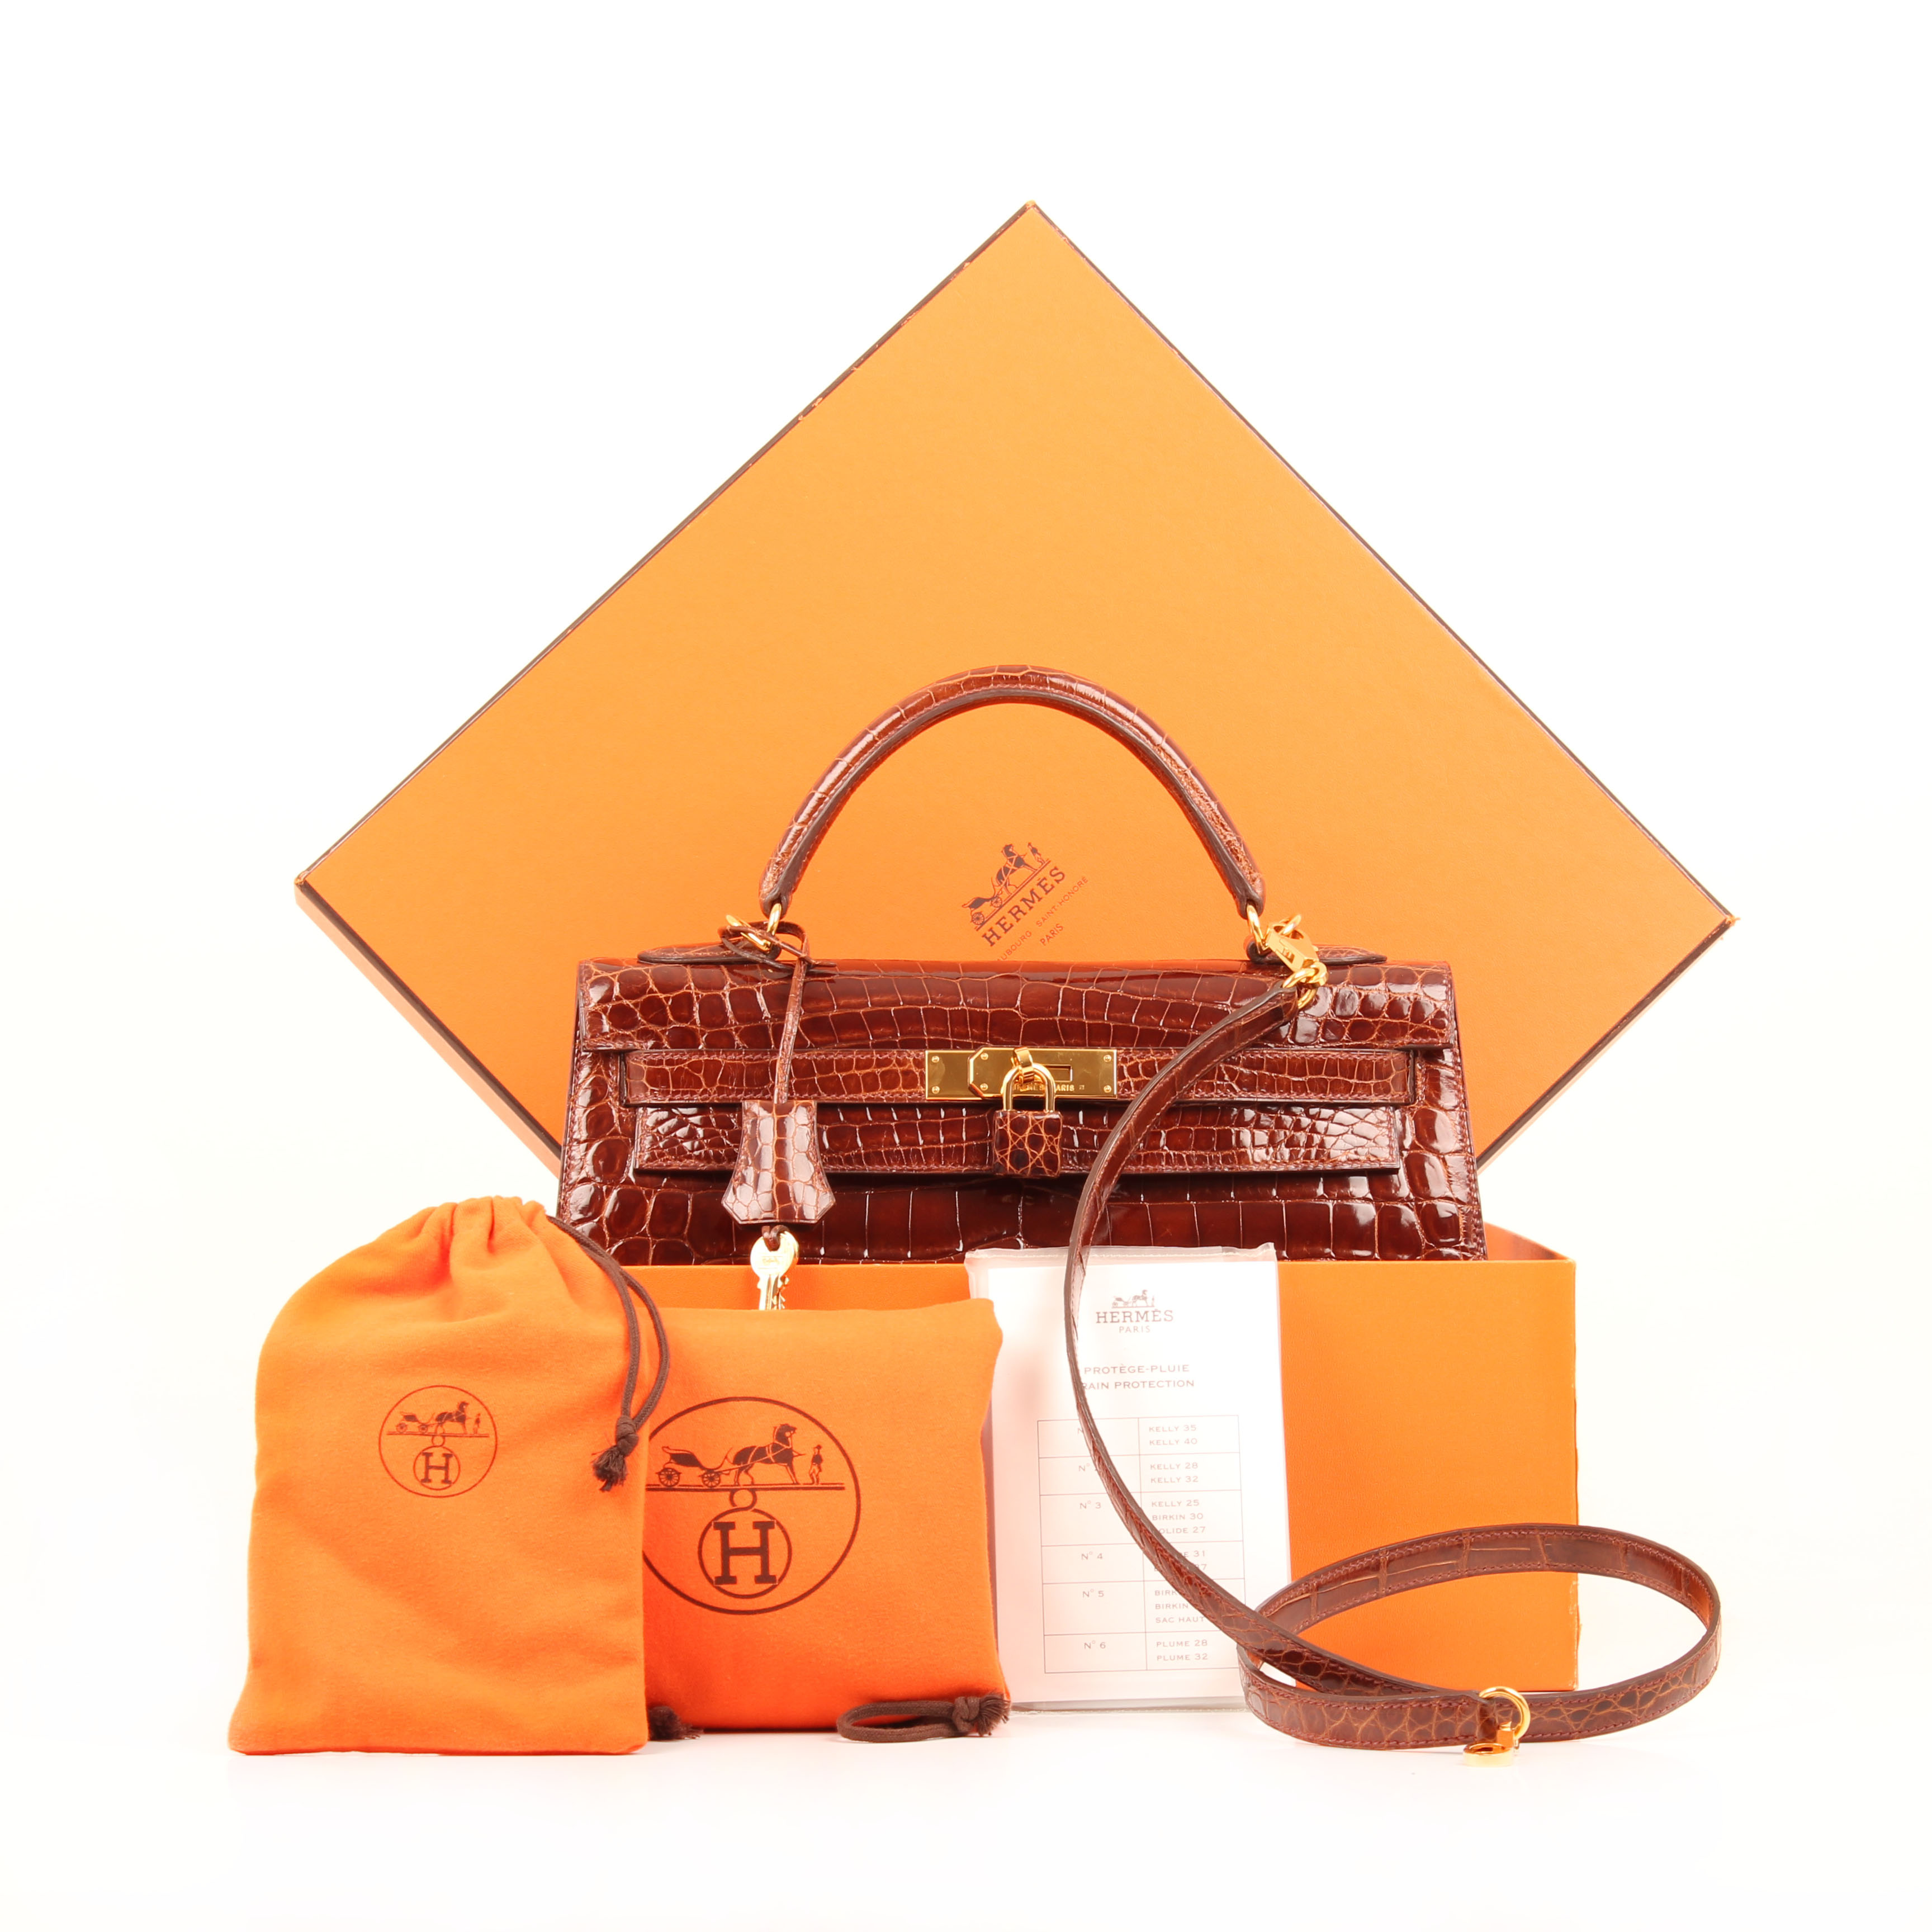 hermes kelly 32 handbag croco porosus whisky box dustbag